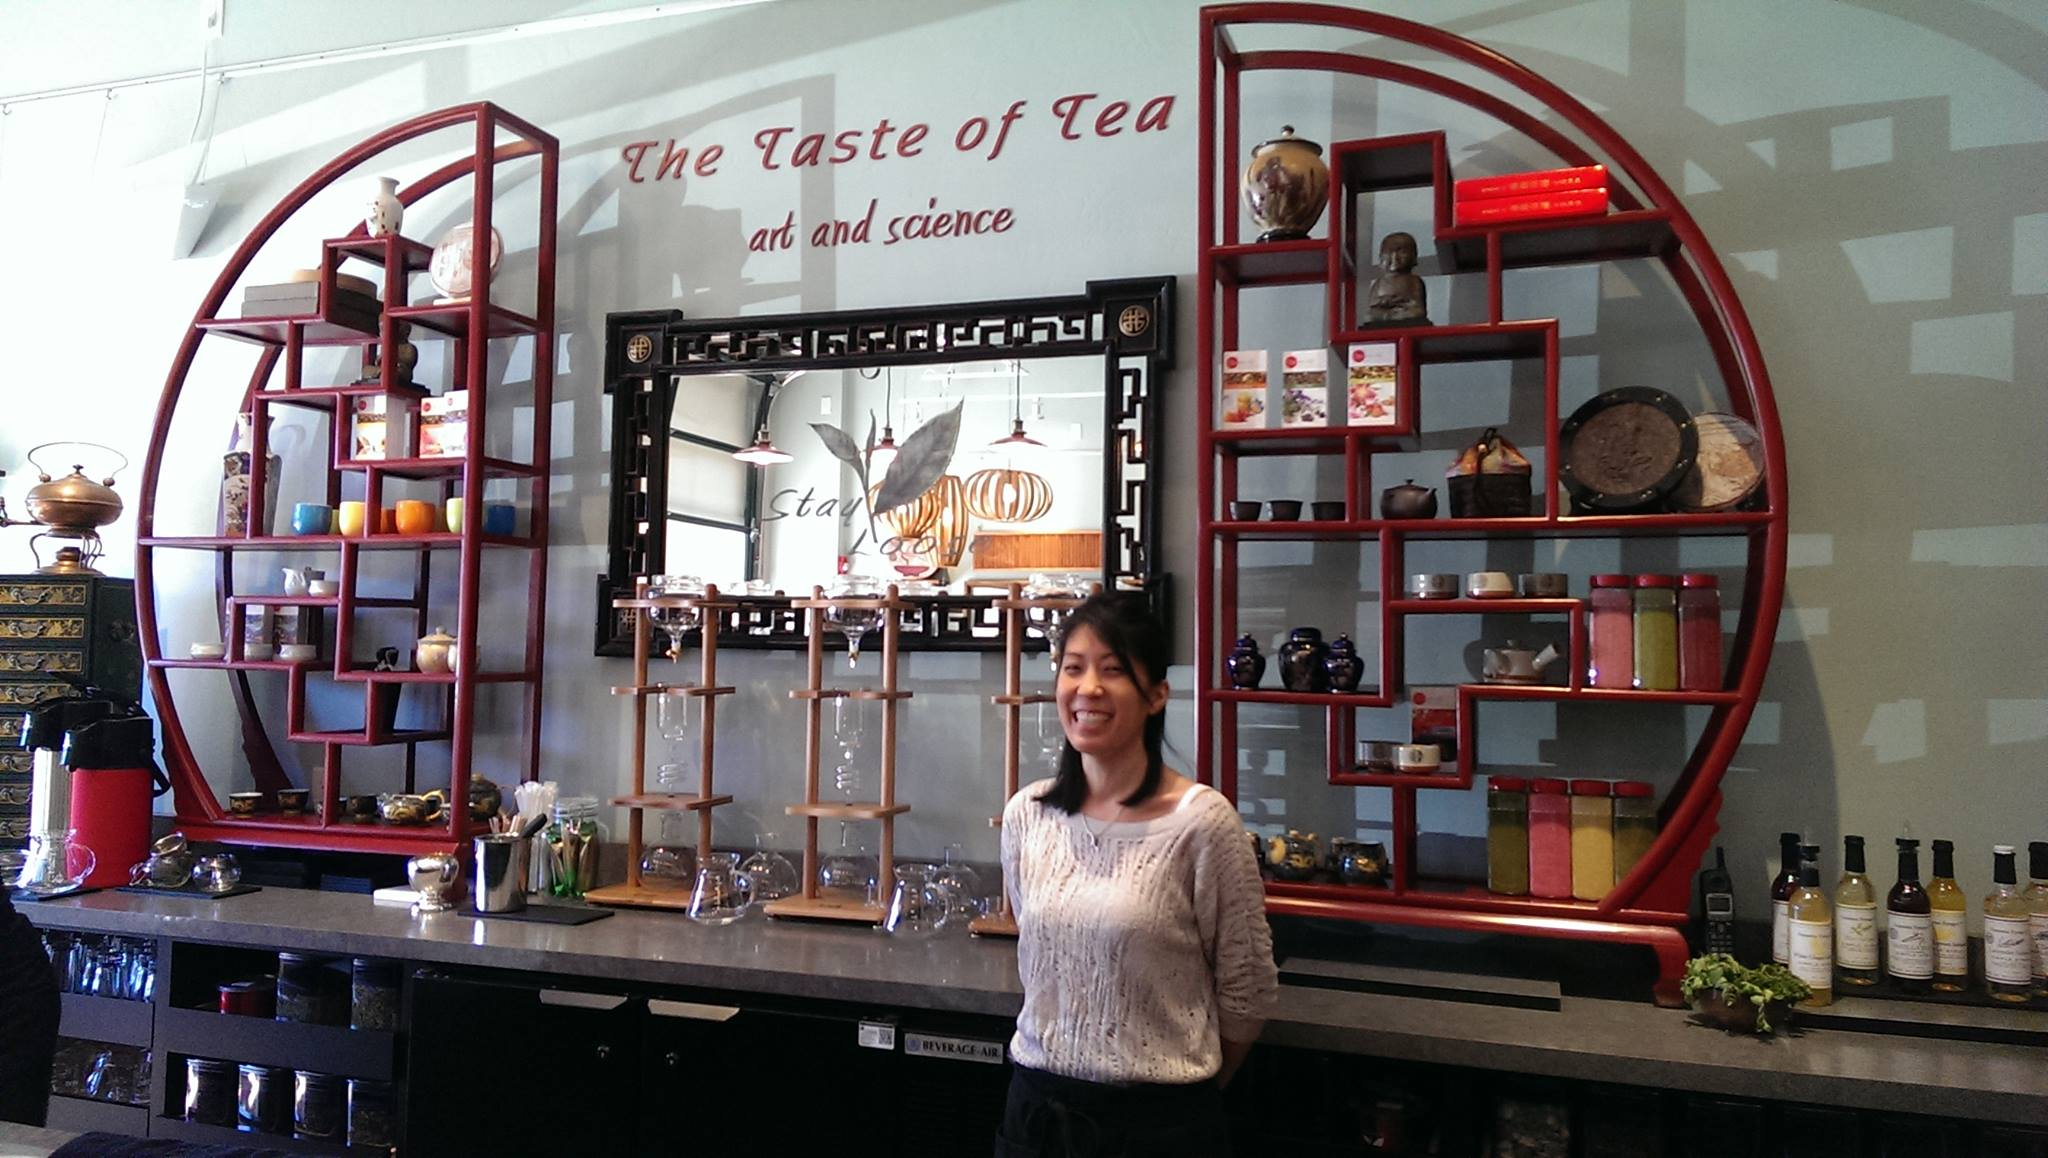 tasting-bar-the-taste-of-tea.jpg